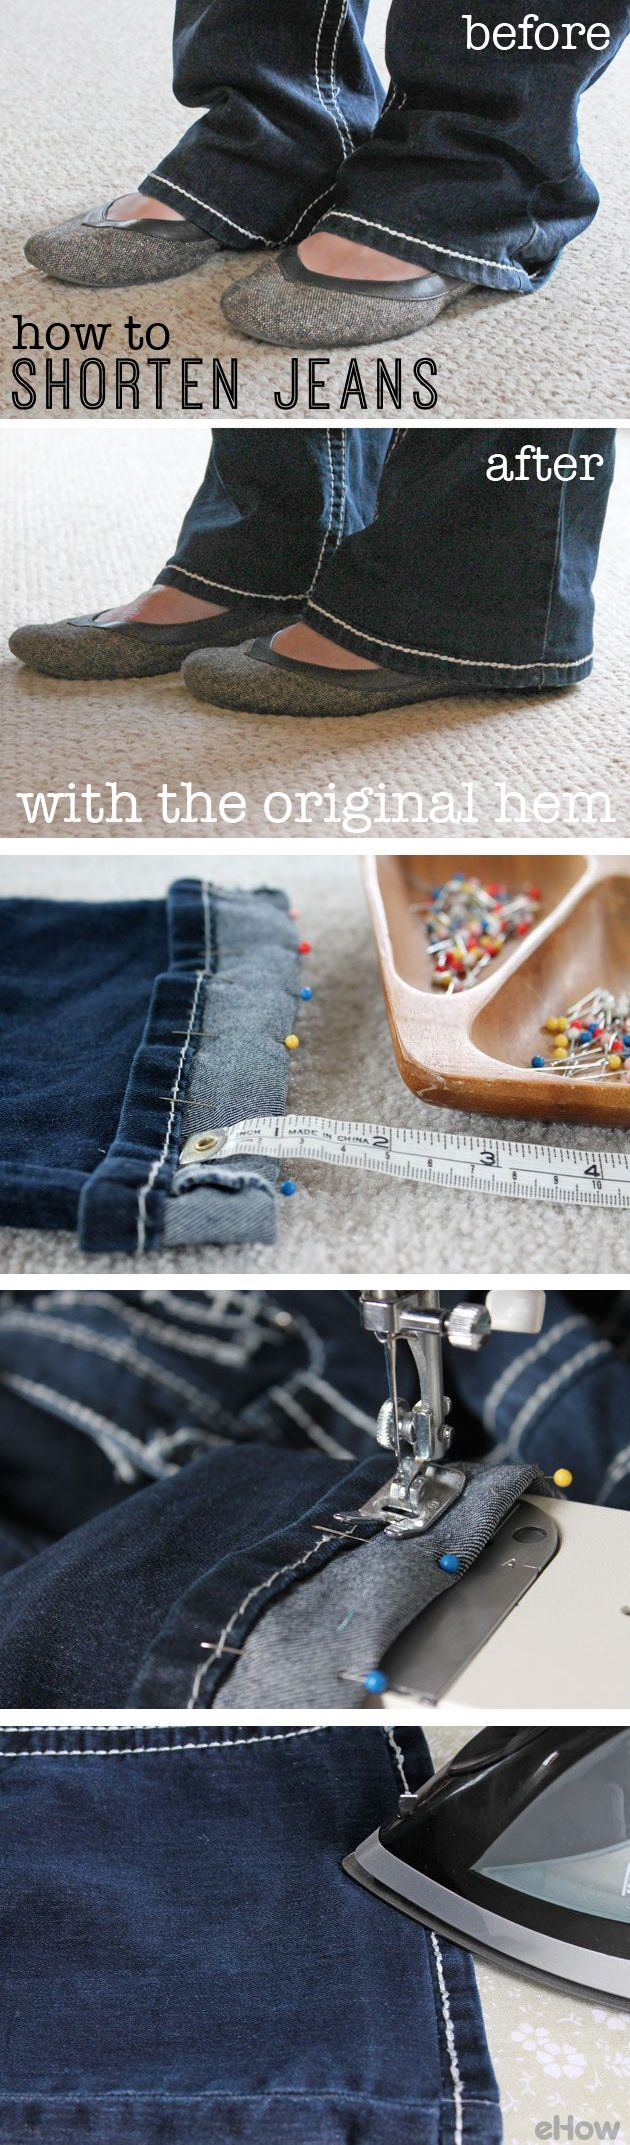 This is how you shorten your jeans  while keeping the original hem! A great trick to reattaching the hem will keep your jeans from looking unfinished: http://www.ehow.com/how_2305591_reattach-original-jeans-hem.html?utm_source=pinterest.com&utm_medium=referral&utm_content=inline&utm_campaign=fanpage                                                                                                                                                                                 More